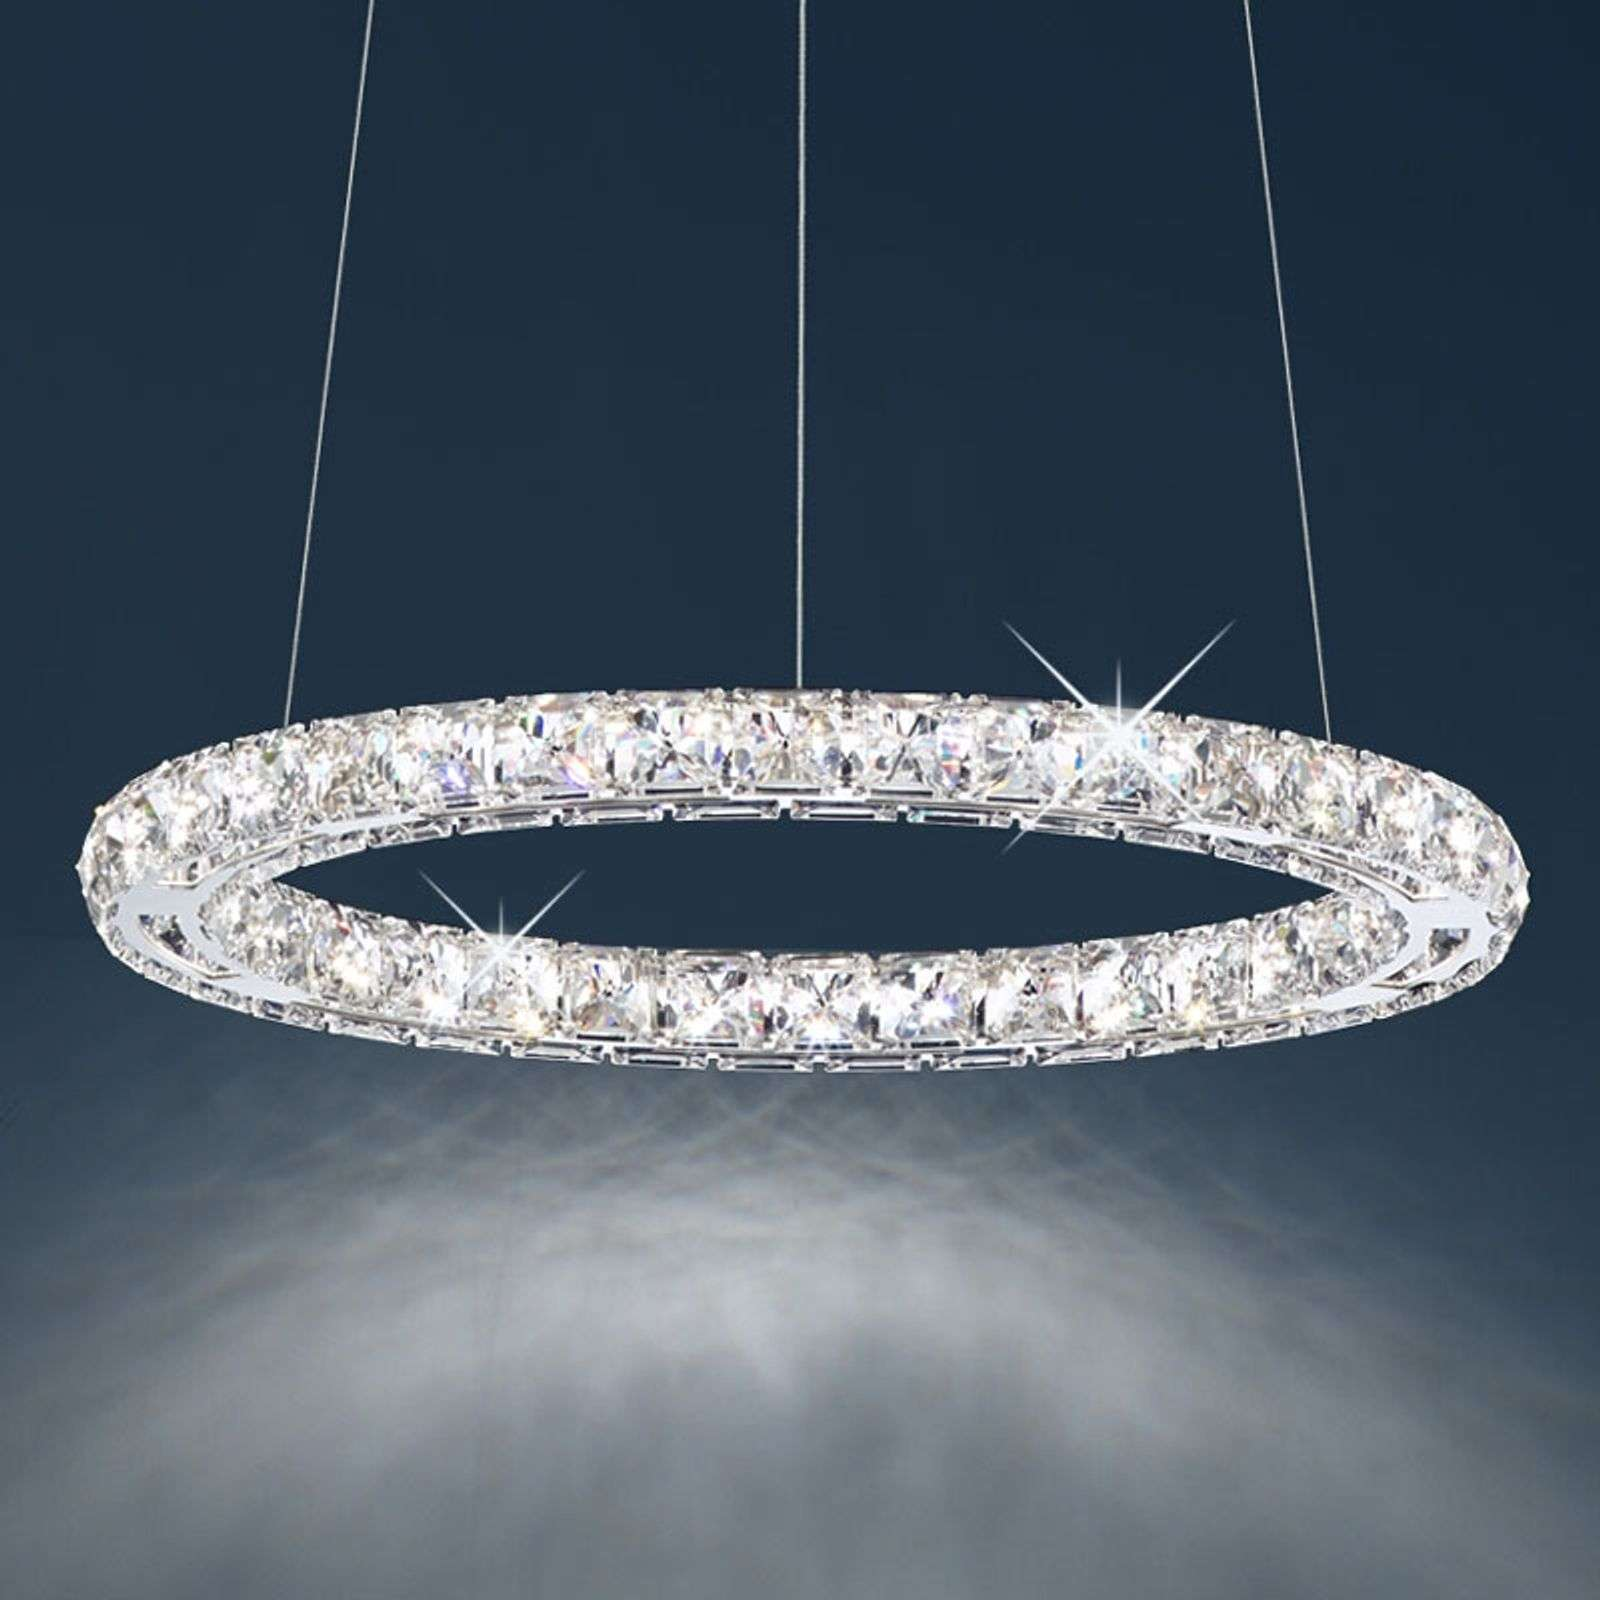 Suspension LED Circle avec pierres Swarovski, 46cm